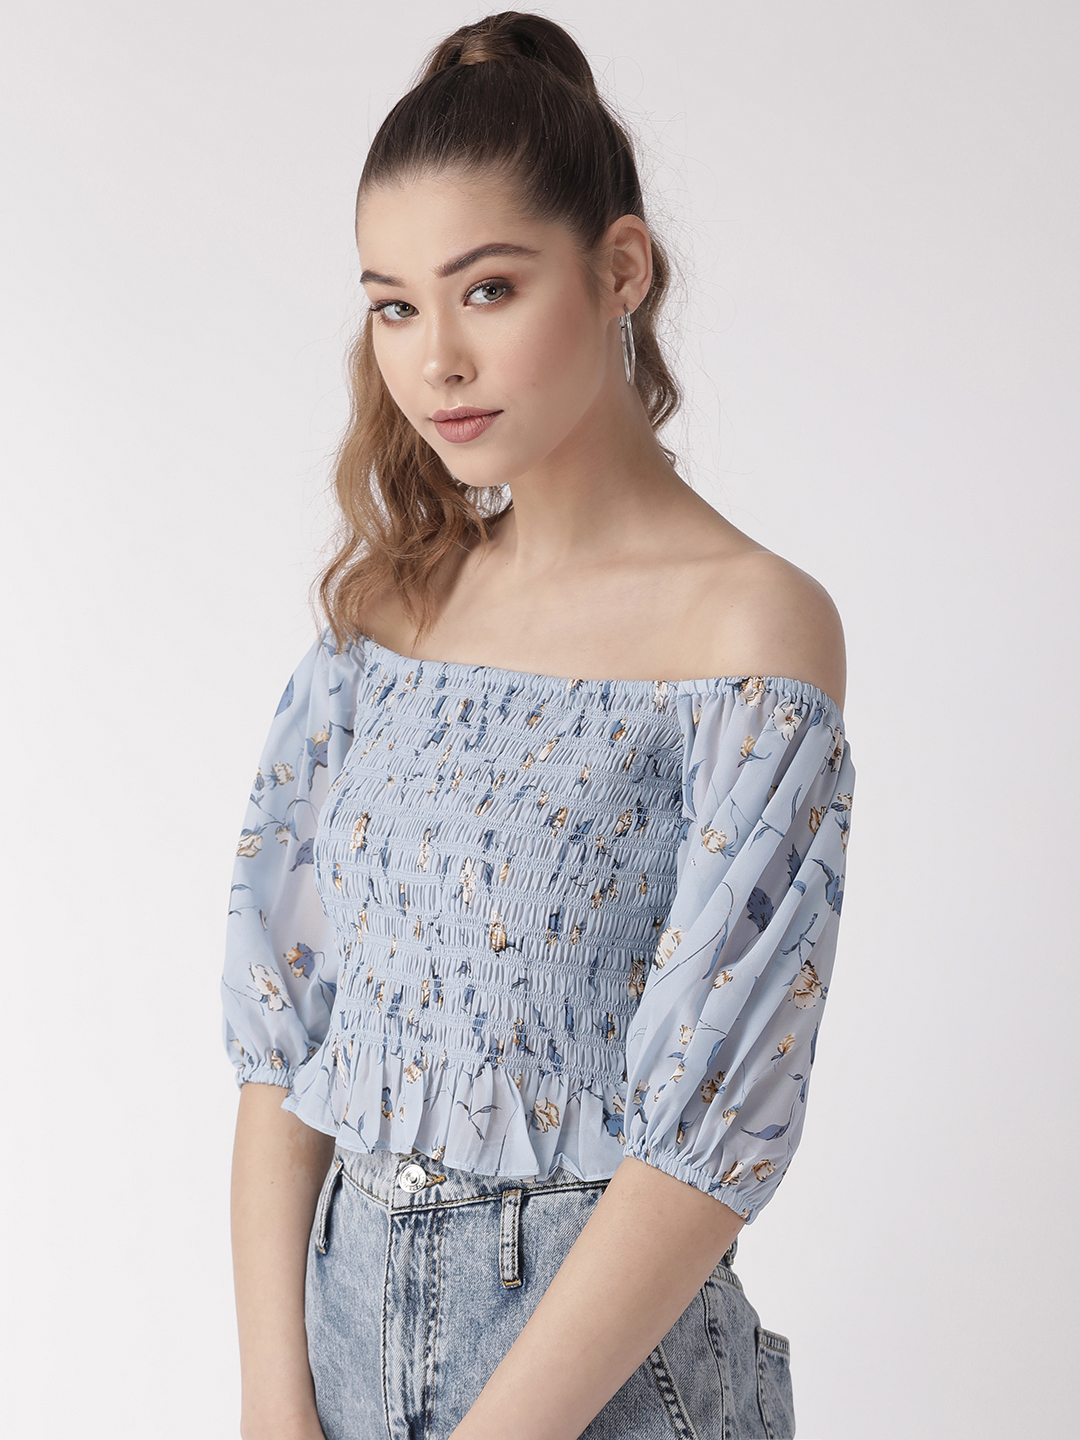 Tops-Calling You Out Cuteness Crop Top2